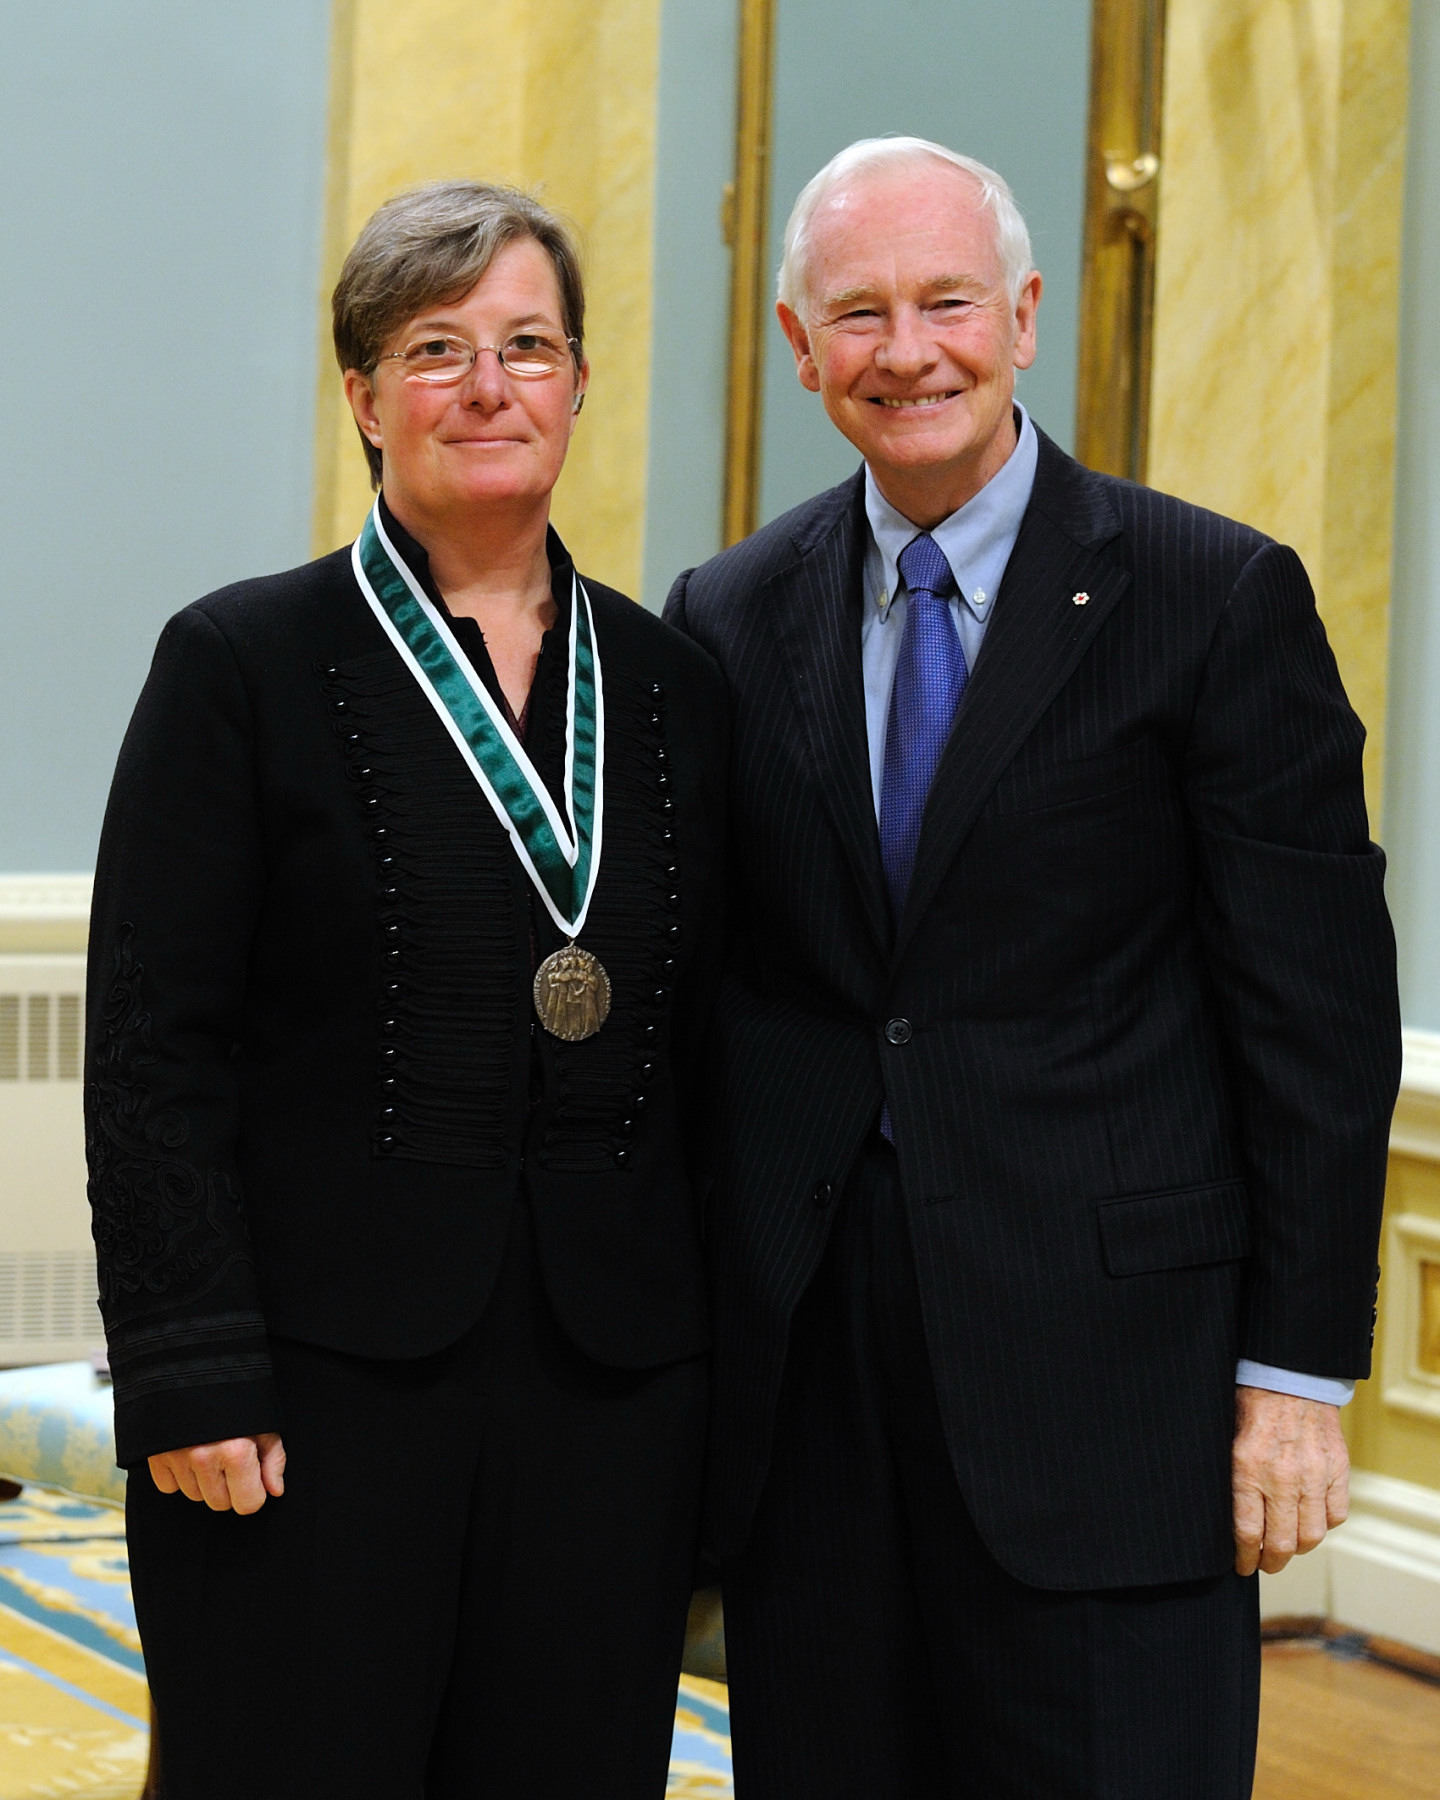 Ms. Marie Louise Fish from Elgin, Ontario, received the 2010 Governor General's Awards in Commemoration of the Persons Case. Ms. Fish developed policies and practices to enhance women's safety, and increased the representation of women on security staff.